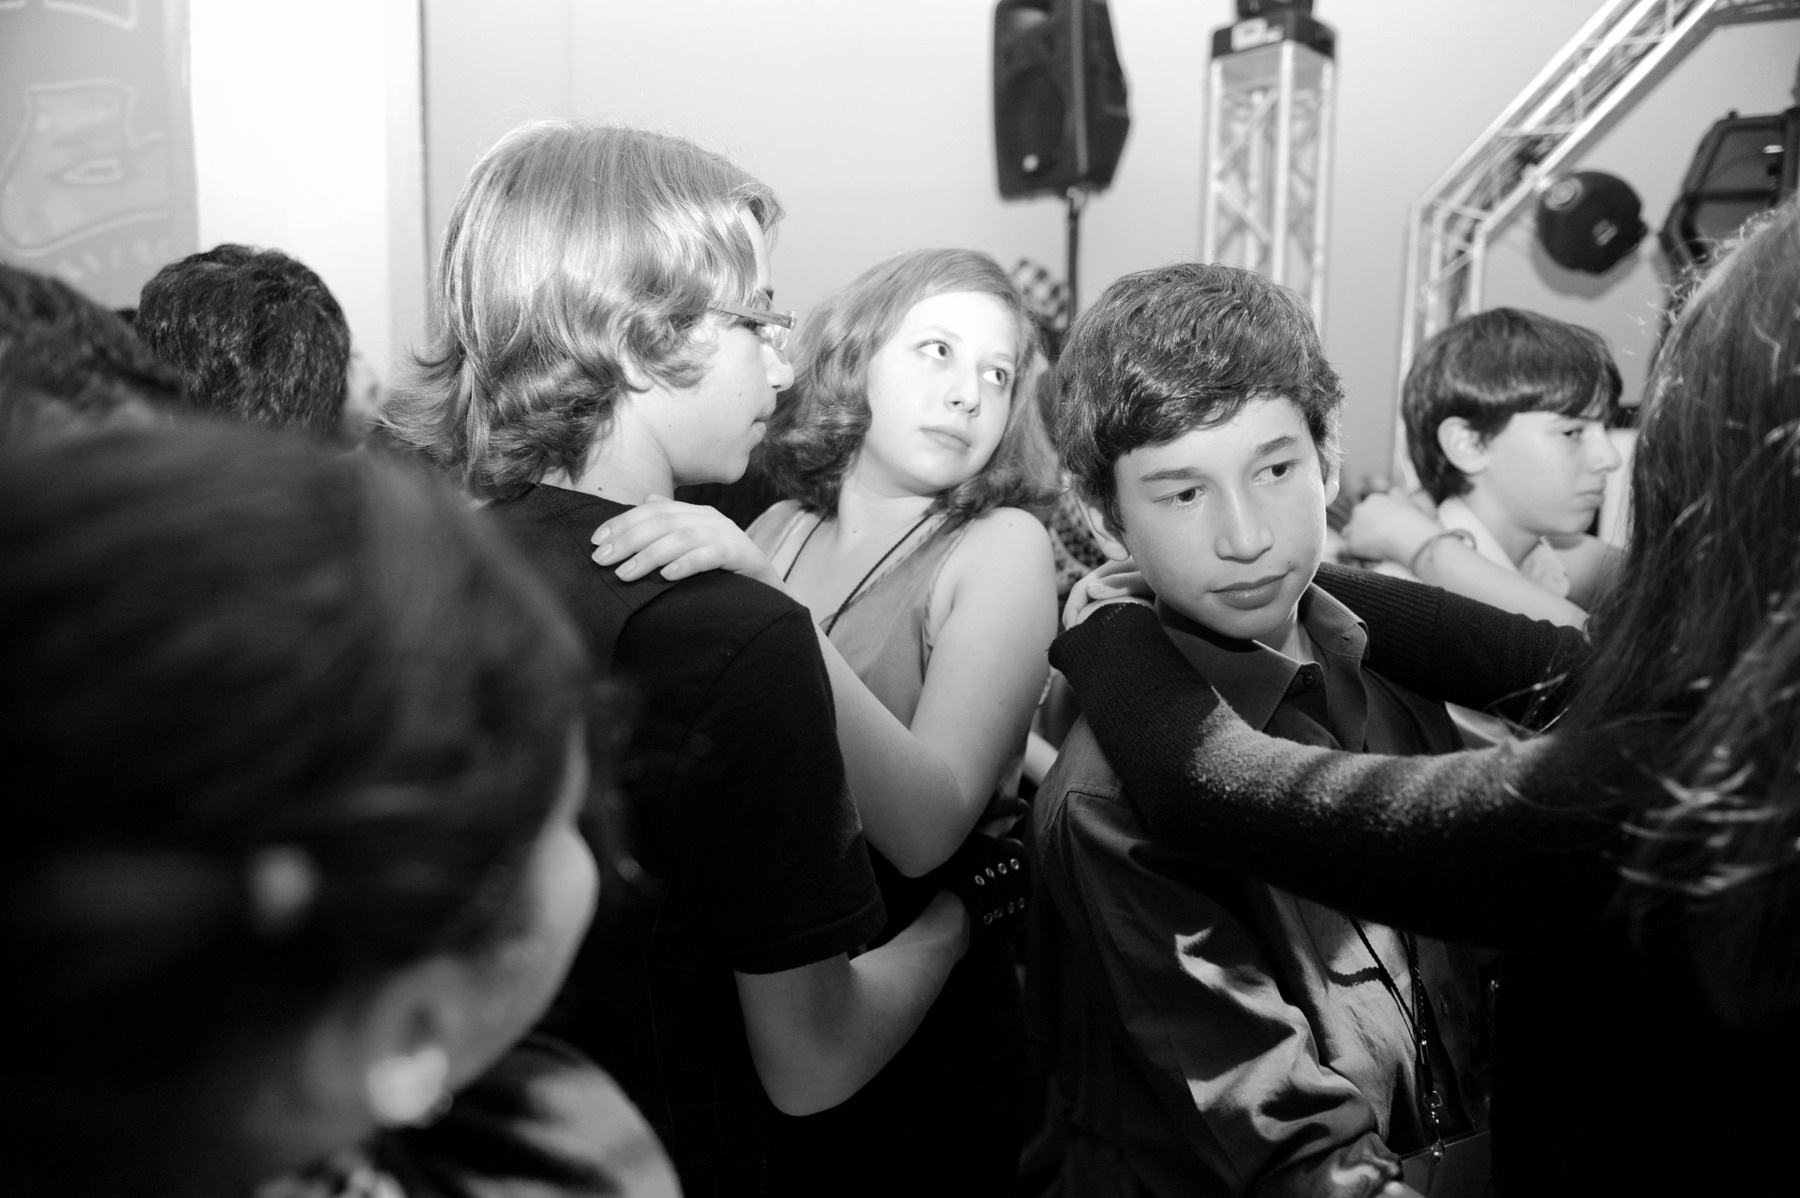 bat_mitzvah_bar_mitzvah_san_francisco_bay_area_photographer_party_photography_134